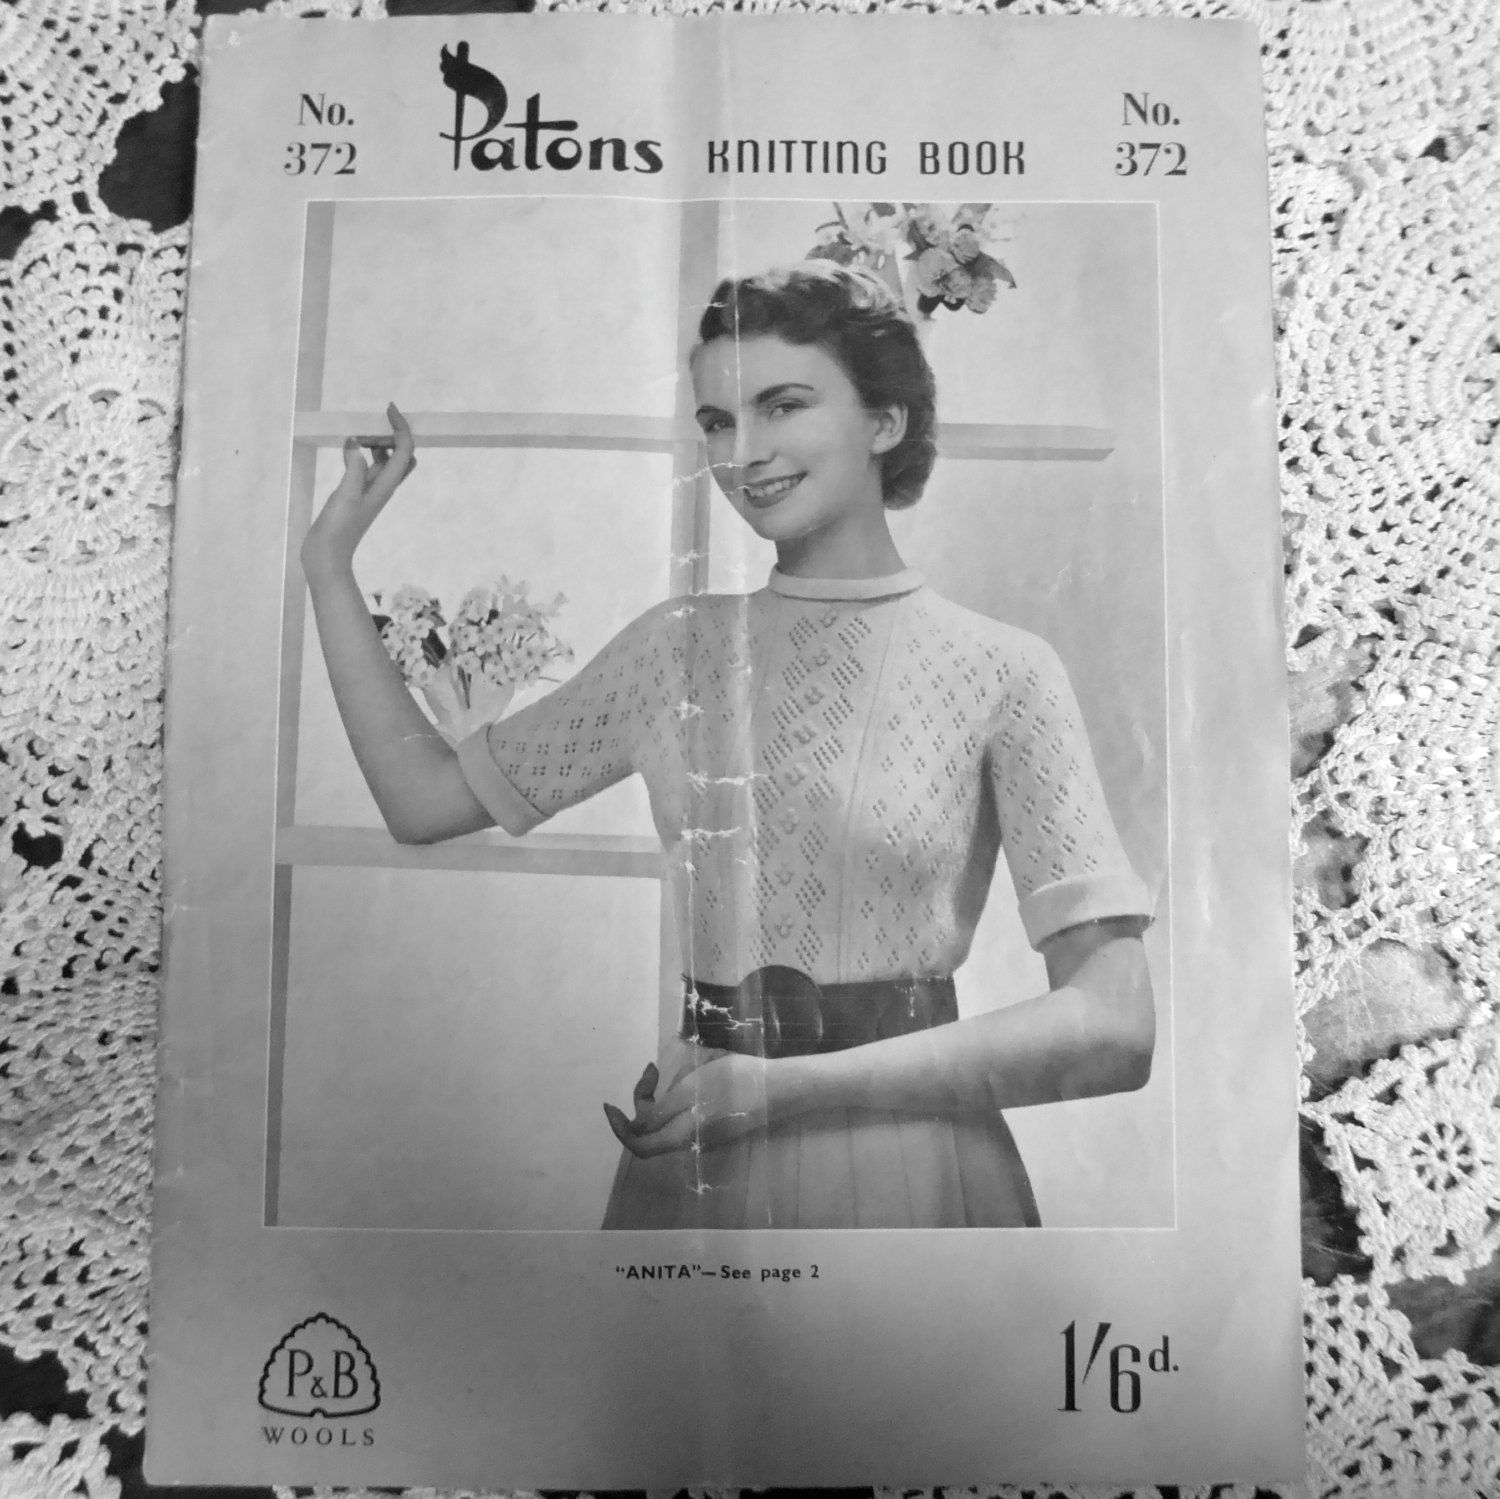 Vintage 1940's 50's Knitting Pattern - Patons Knitting Book